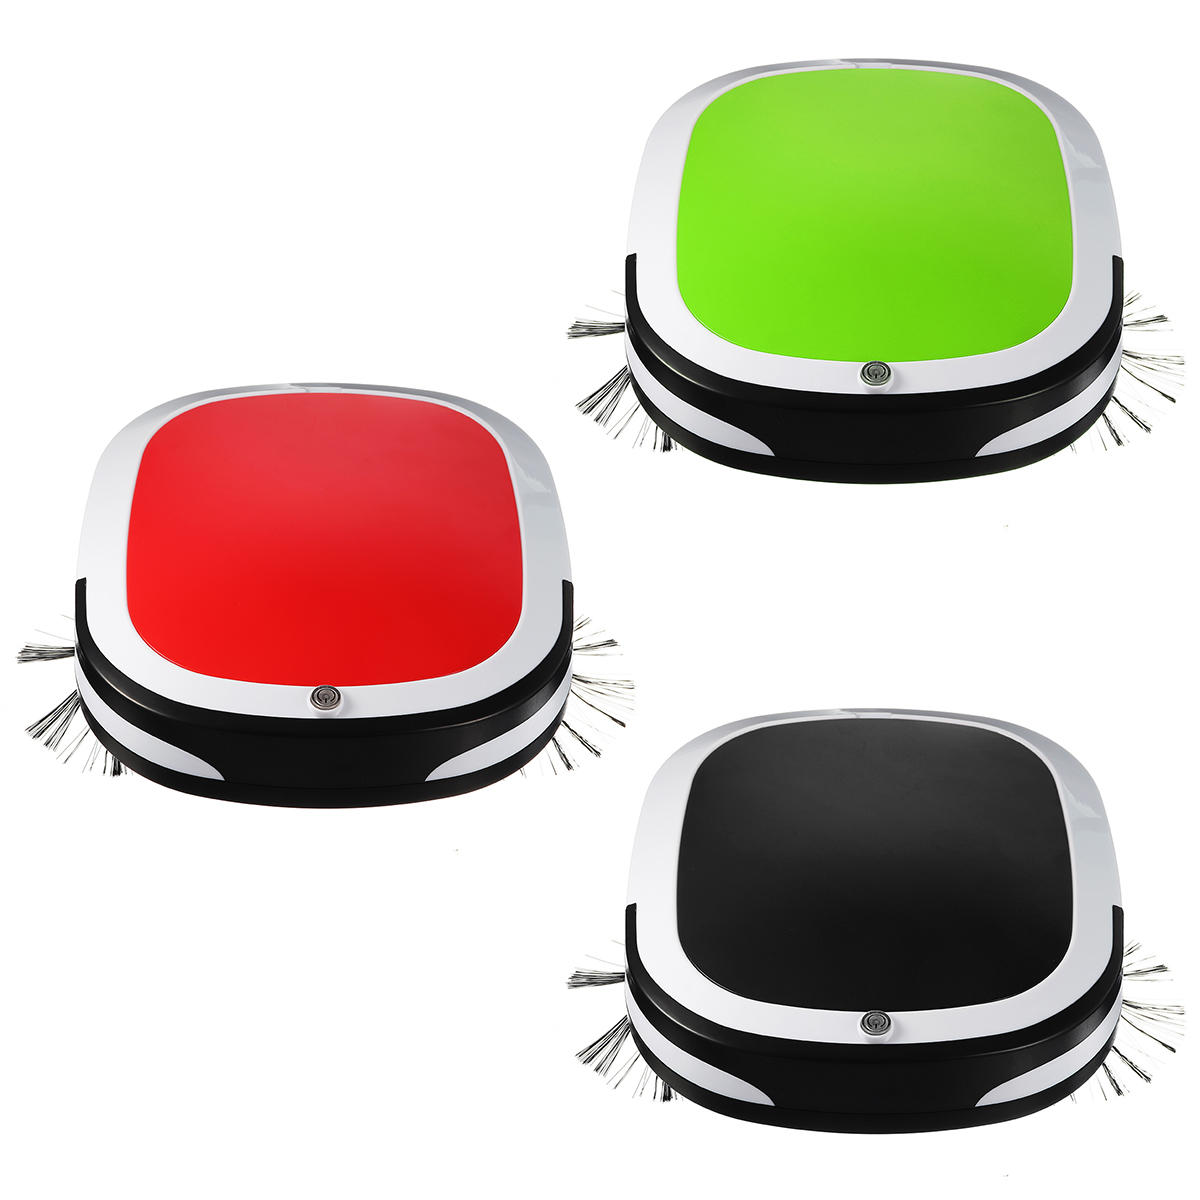 3 in 1 New Rechargeable Strong Suction Sweeping Smart Clean Robot Vacuum Cleaner